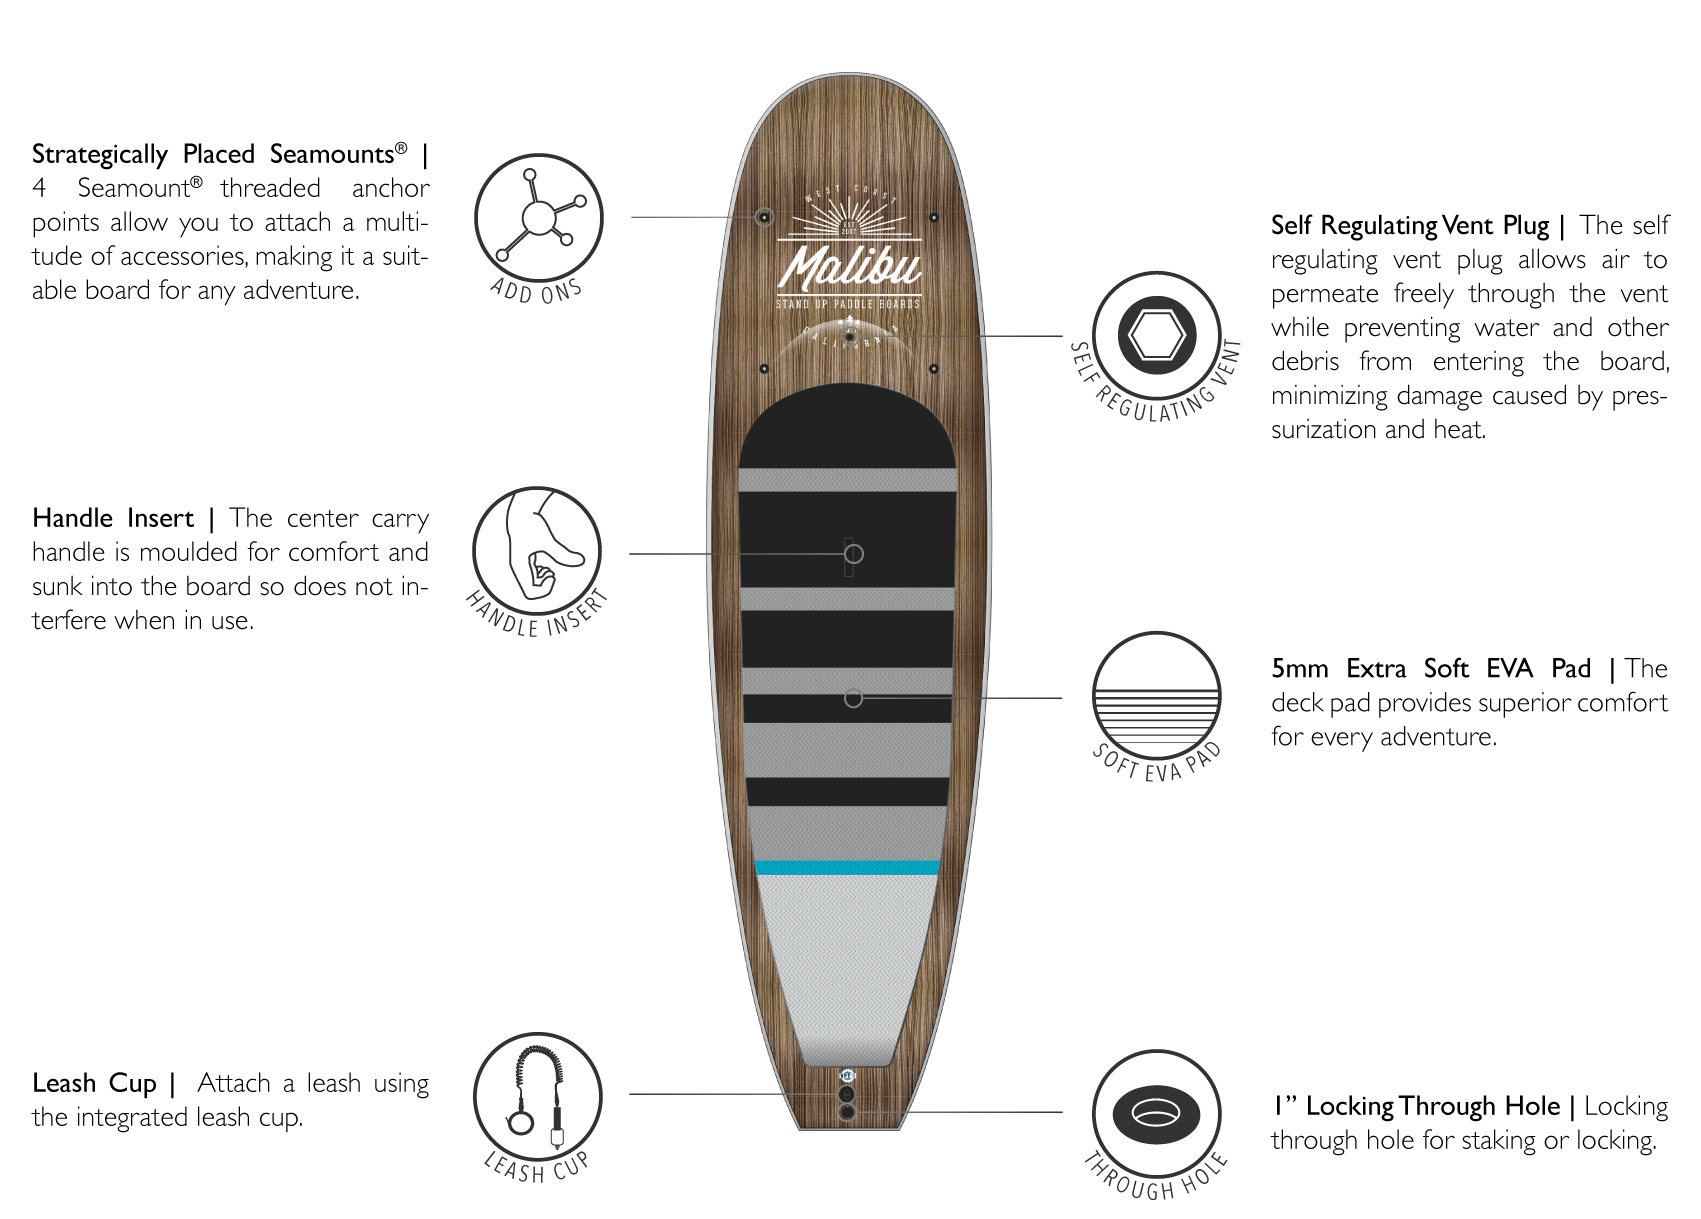 The Malibu is the best beginner stand up paddle board on the market. Features of the Pau Hana Sup Malibu classic paddle board strategically placed seamounts, center grab handle, 5mm soft deck pad, self regulating vent plug, leash cup and locking through hole